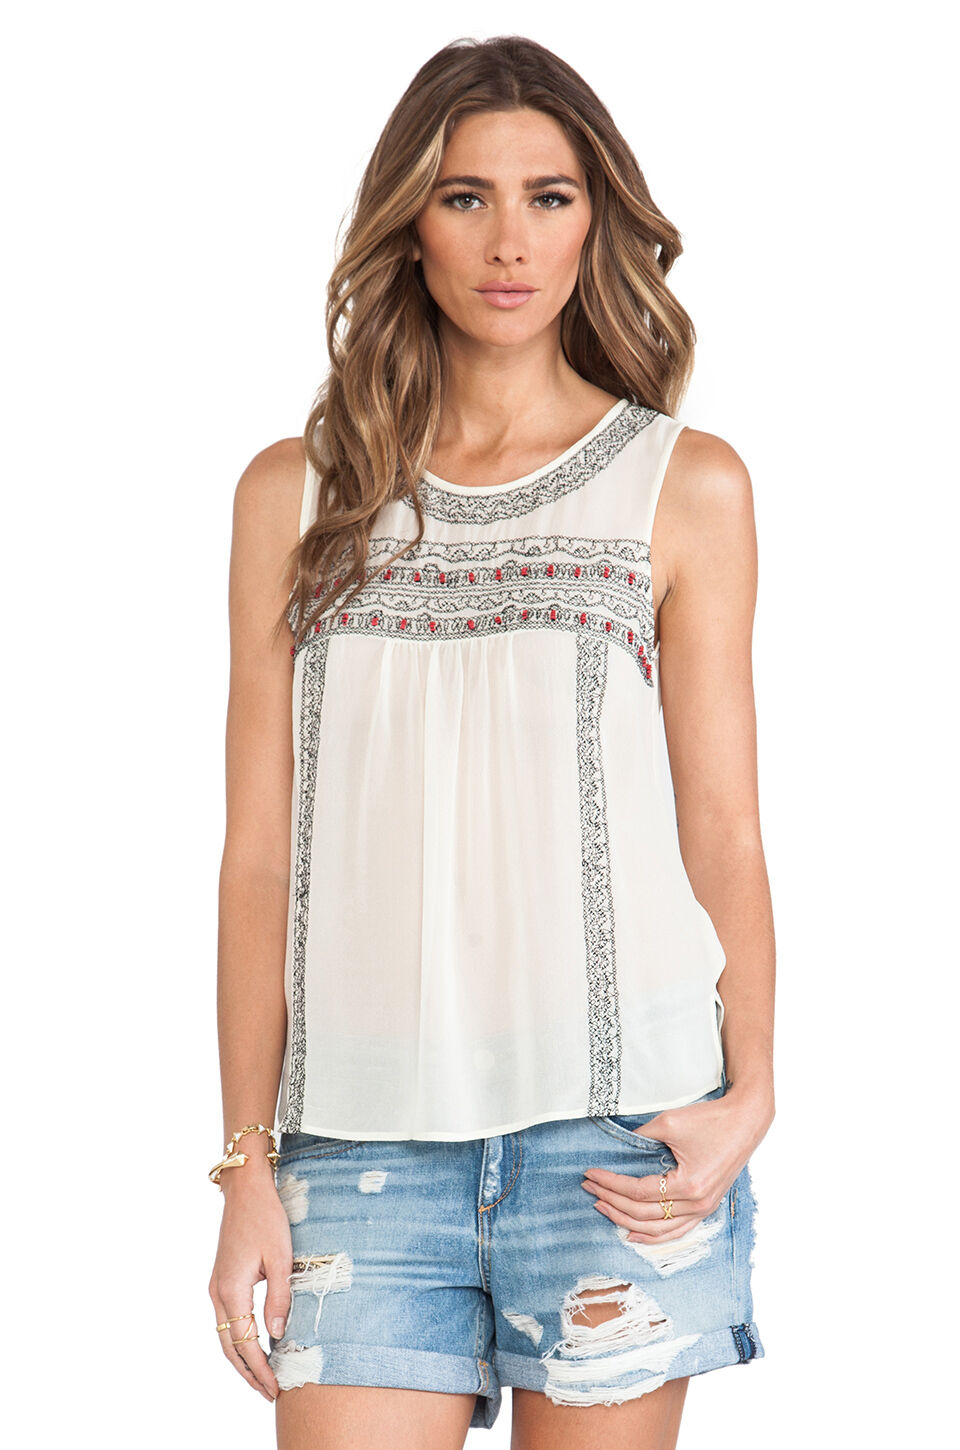 NWT  298 Sz. S JOIE & 039;Norristelle& 039; Silk Embellished Beaded Blouse Tank Top Weiß